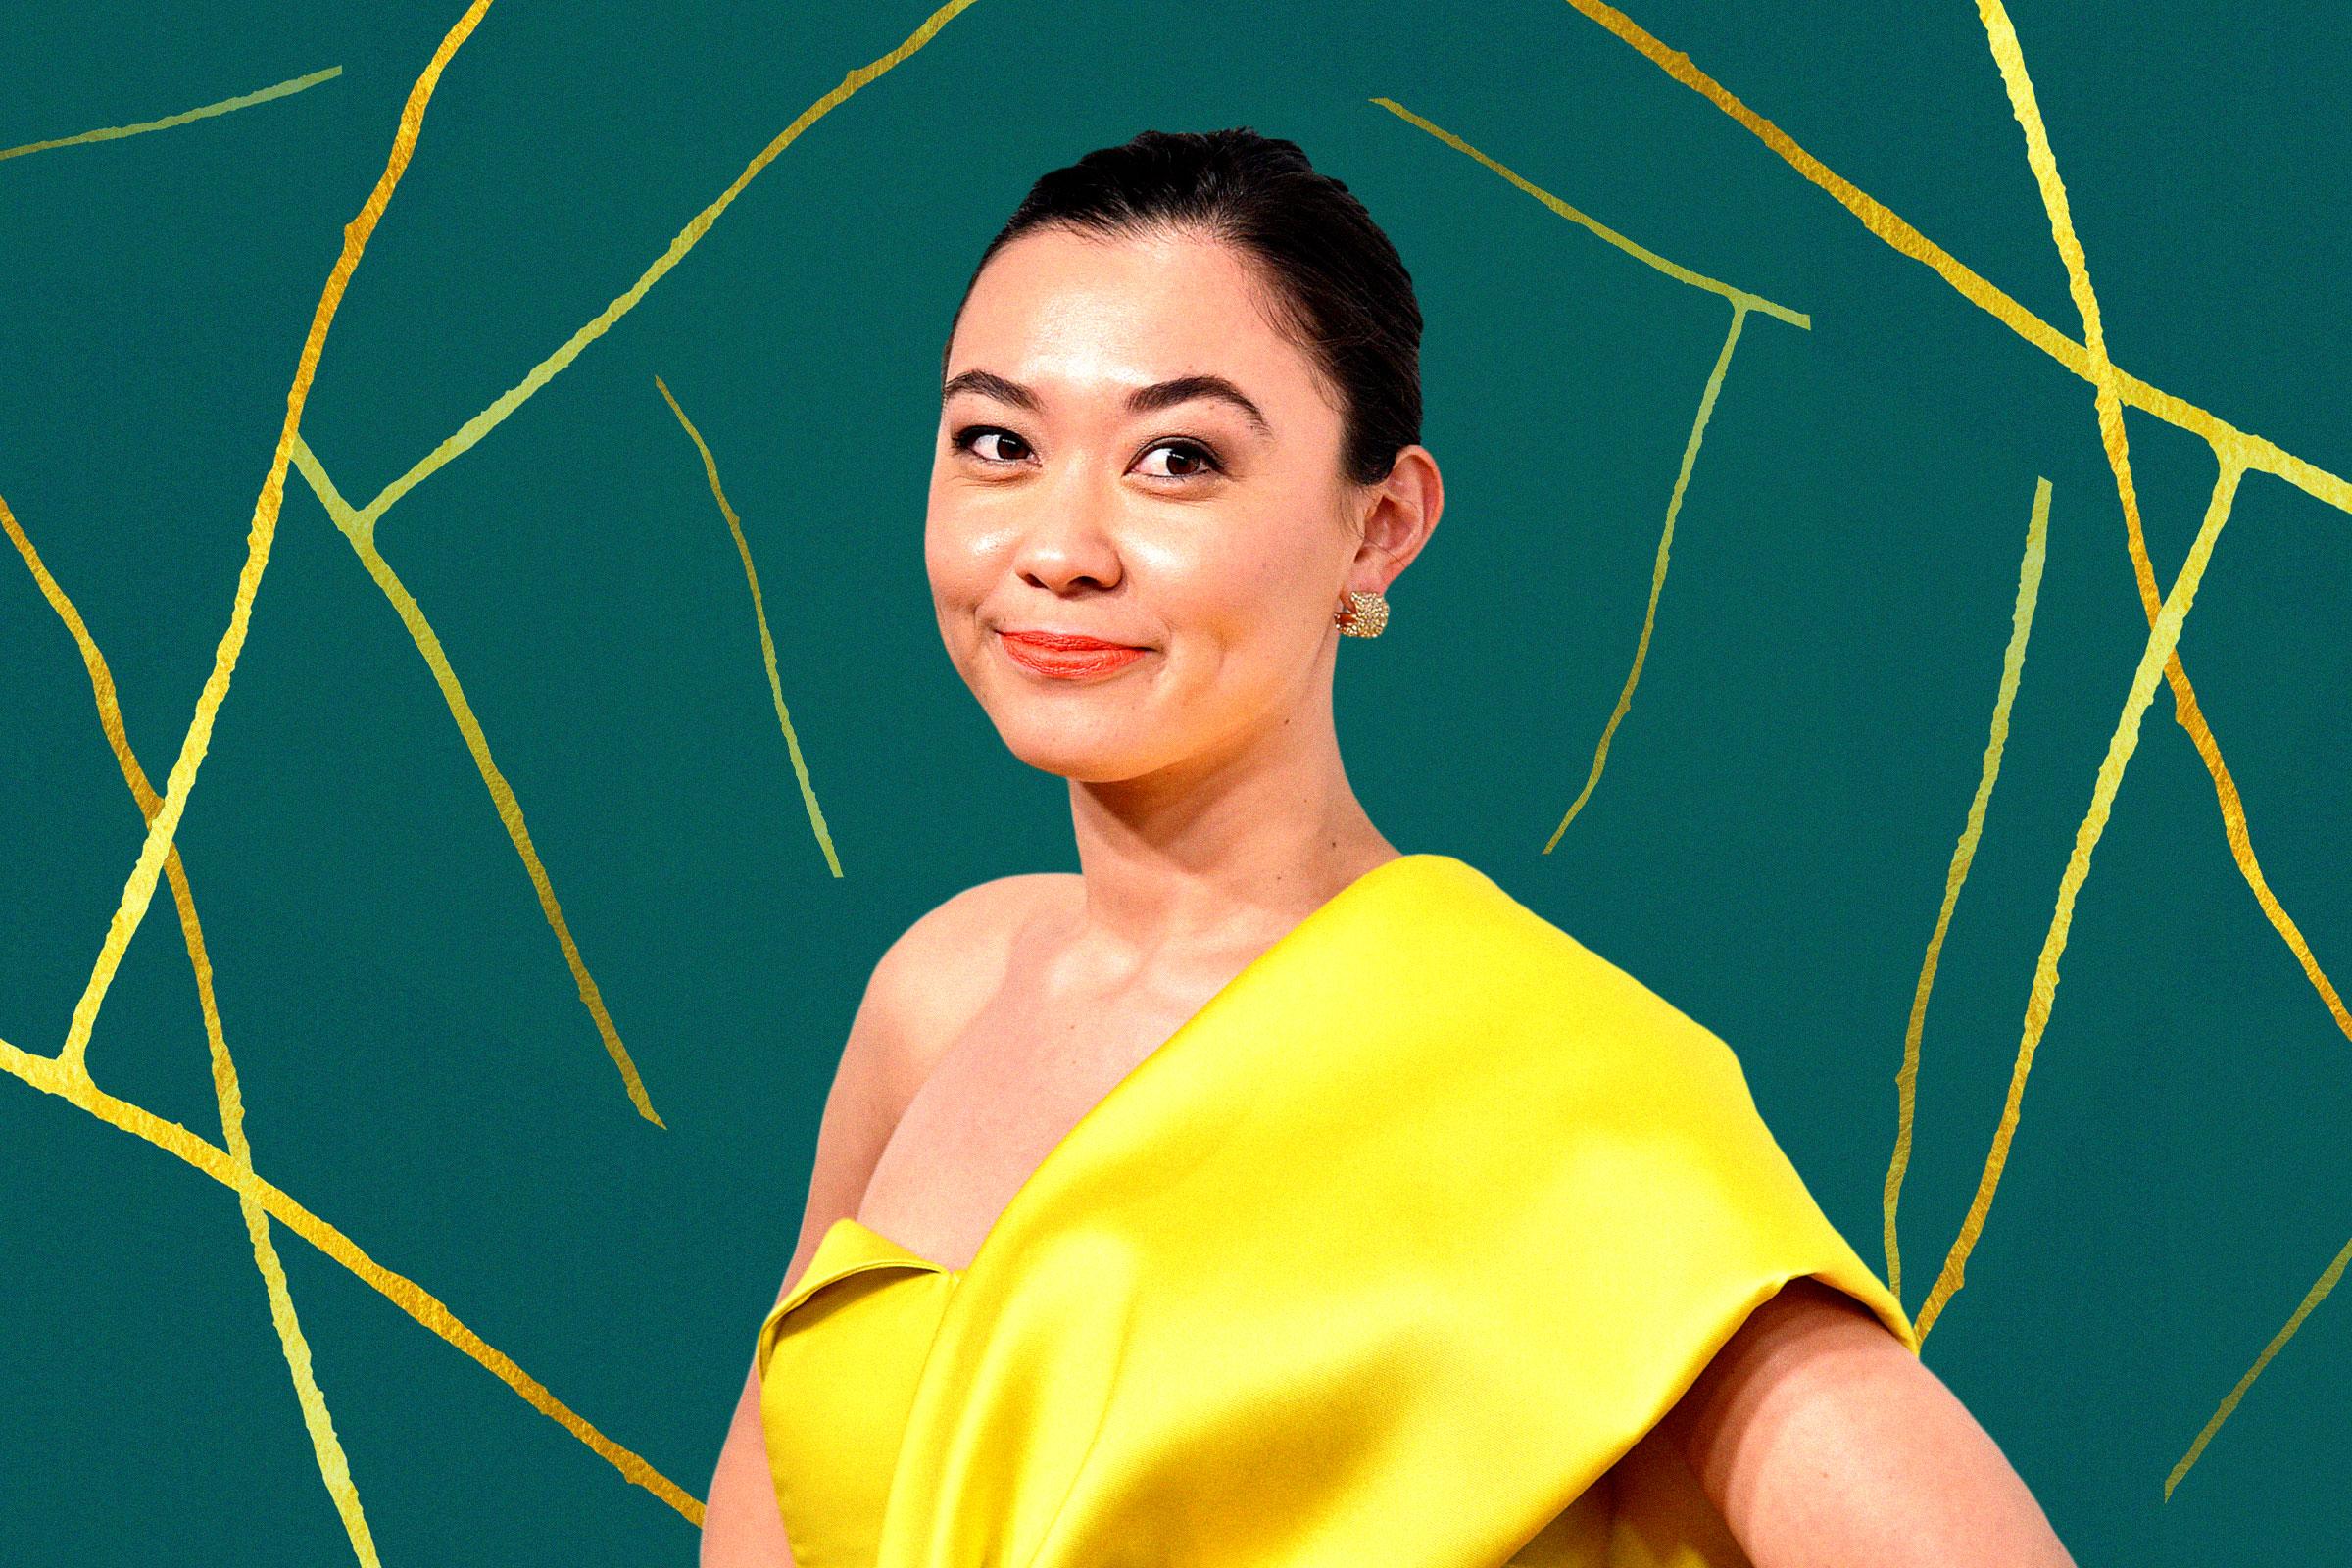 Chanel Miller, a mixed-race woman with brown hair pulled into a low bun, poses in a yellow dress in front of a green and yellow background